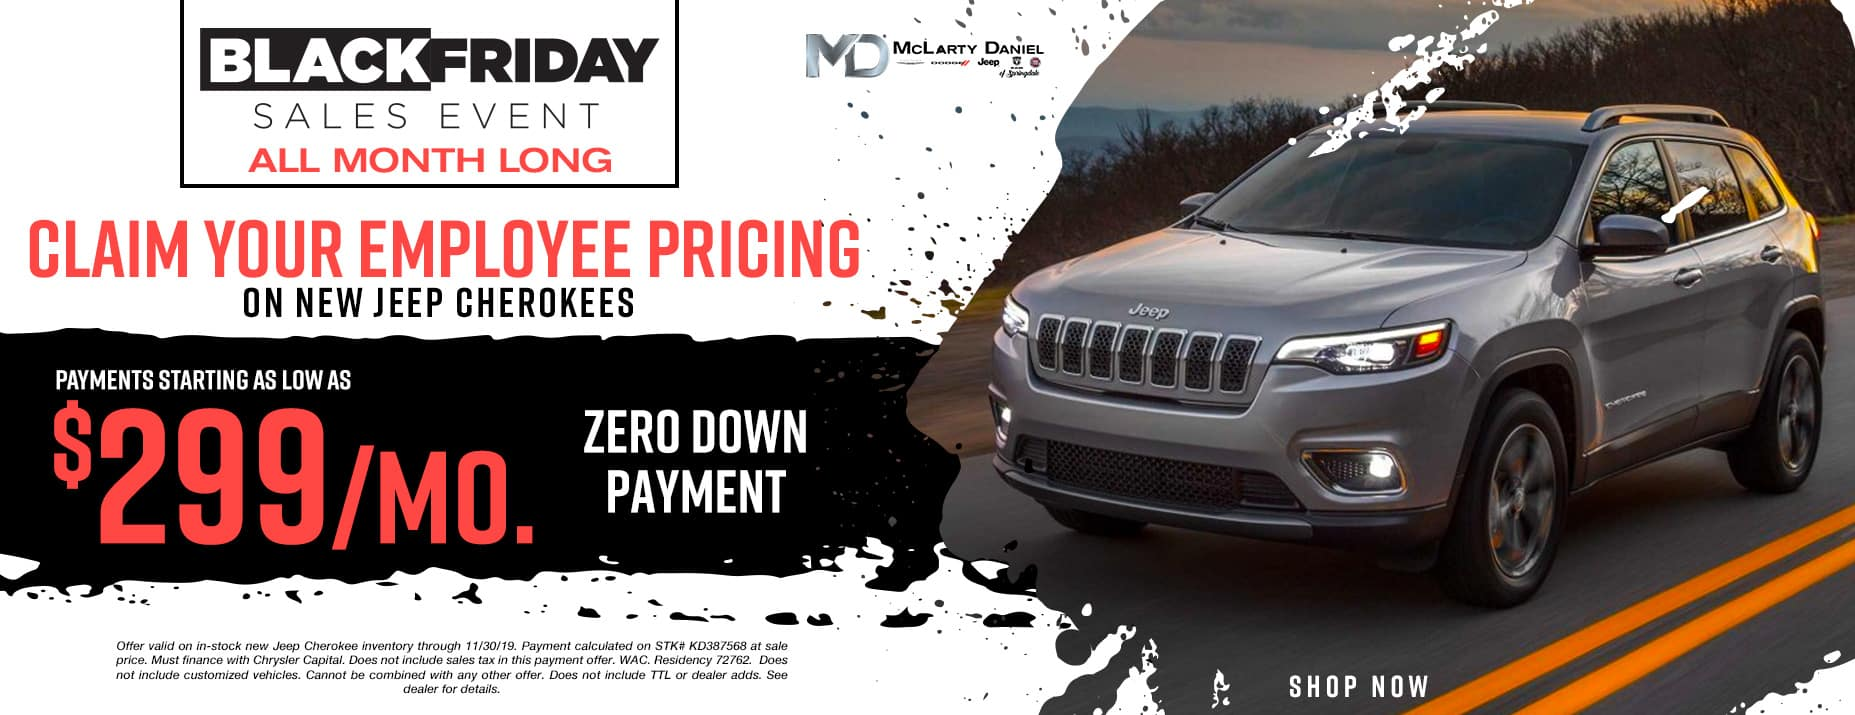 CLAIM YOUREMPLOYEE PRICING ON JEEP CHEROKEE - PAYMENTS STARTING AS LOW AS $299/mo, NO MONEY DOWN!